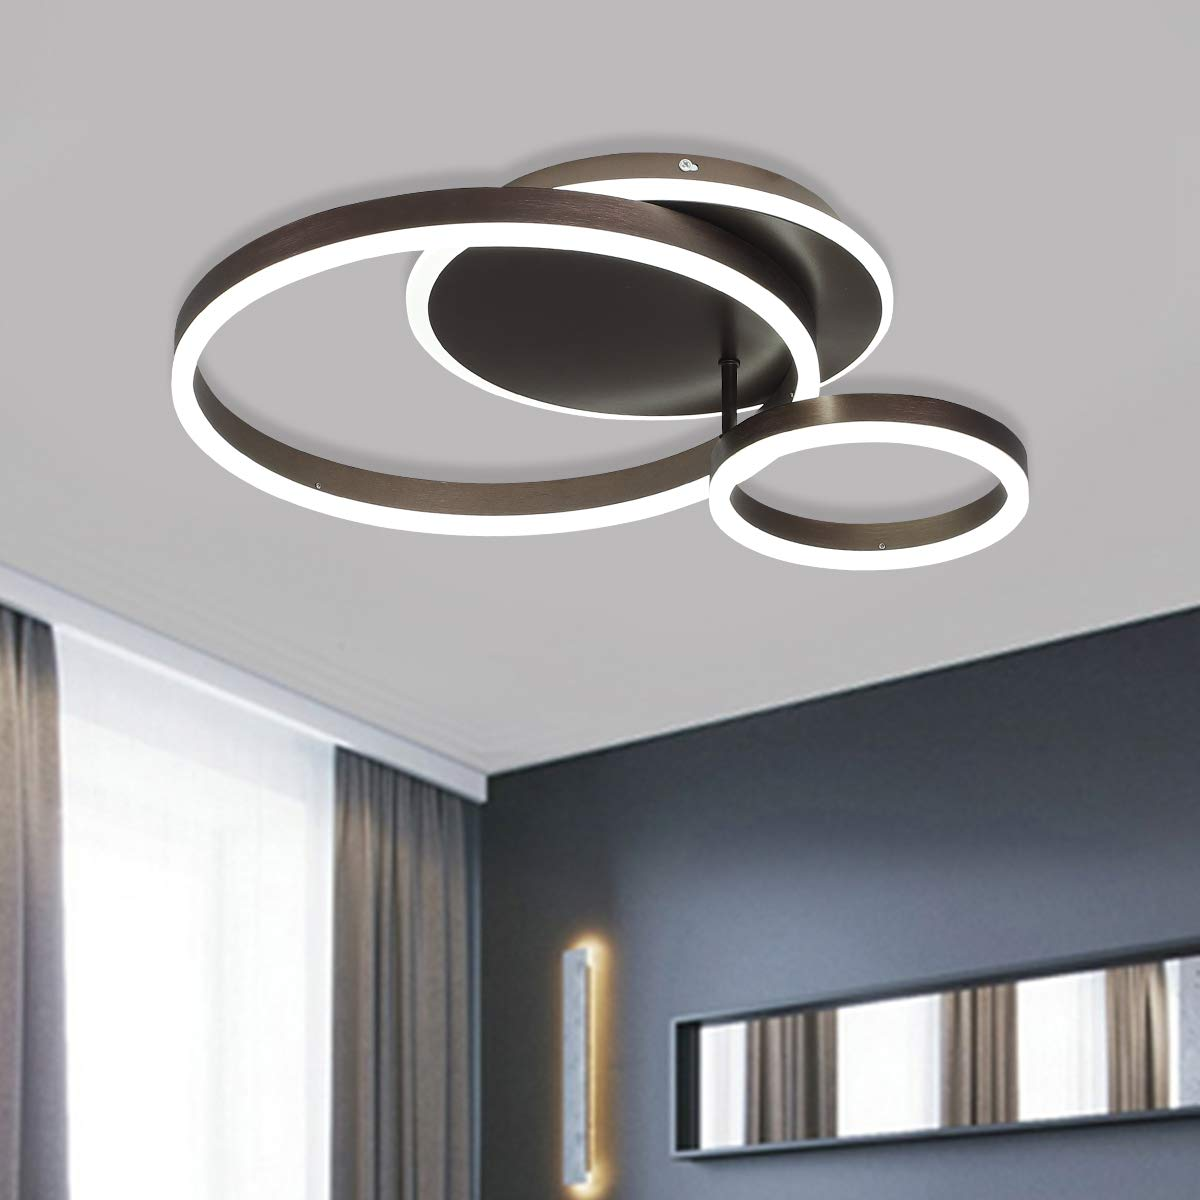 Jaycomey Modern LED Ceiling Light,52W 3-Rings LED Chandelier Ceiling Lamp,Brushed Aluminum Acrylic Flush Mount Ceiling Light Fixture for Living Room Bedroom Kitchen,Daylight 6000K,Coffee Color